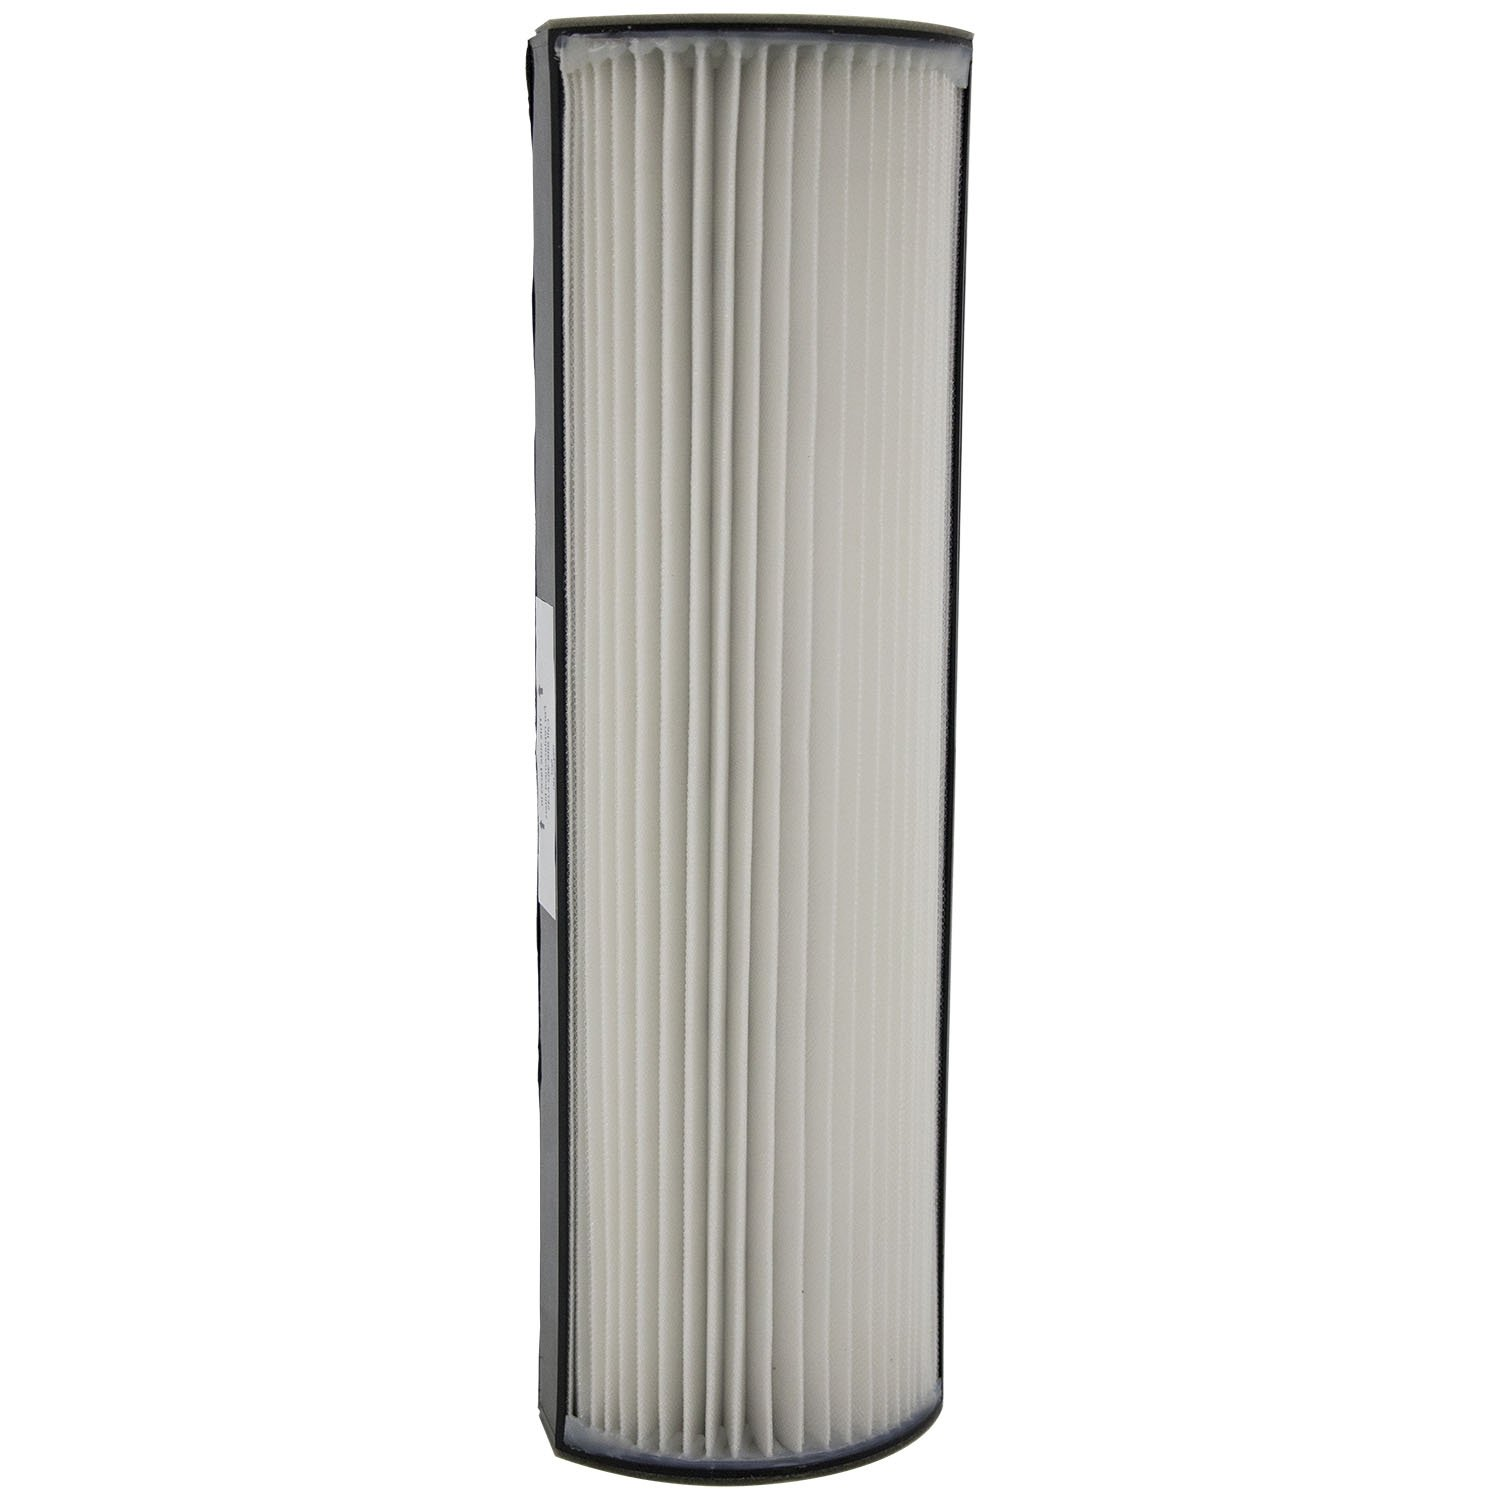 Replacement for Therapure TPP440 Filter (TPP440FL)